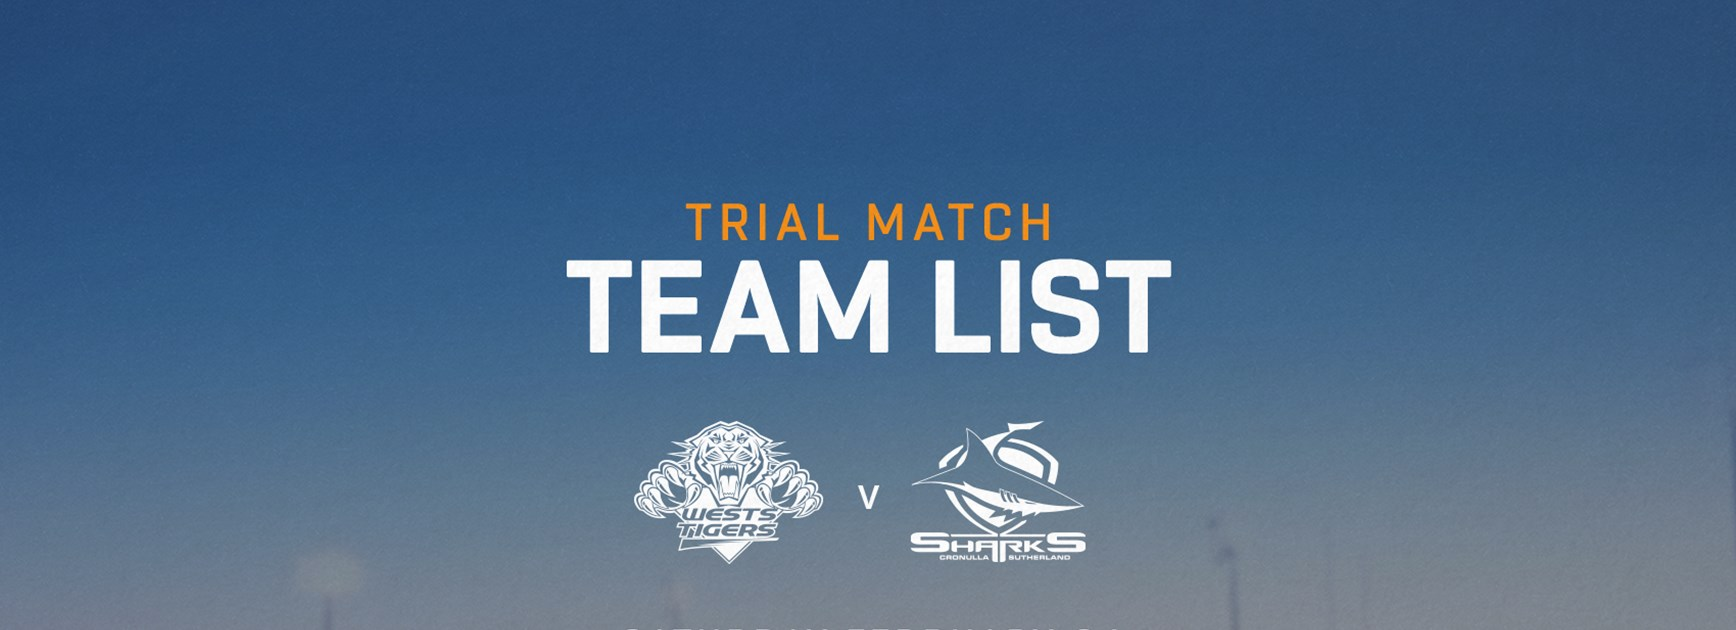 Team Announcement: Wests Tigers vs. Cronulla Sharks Trial